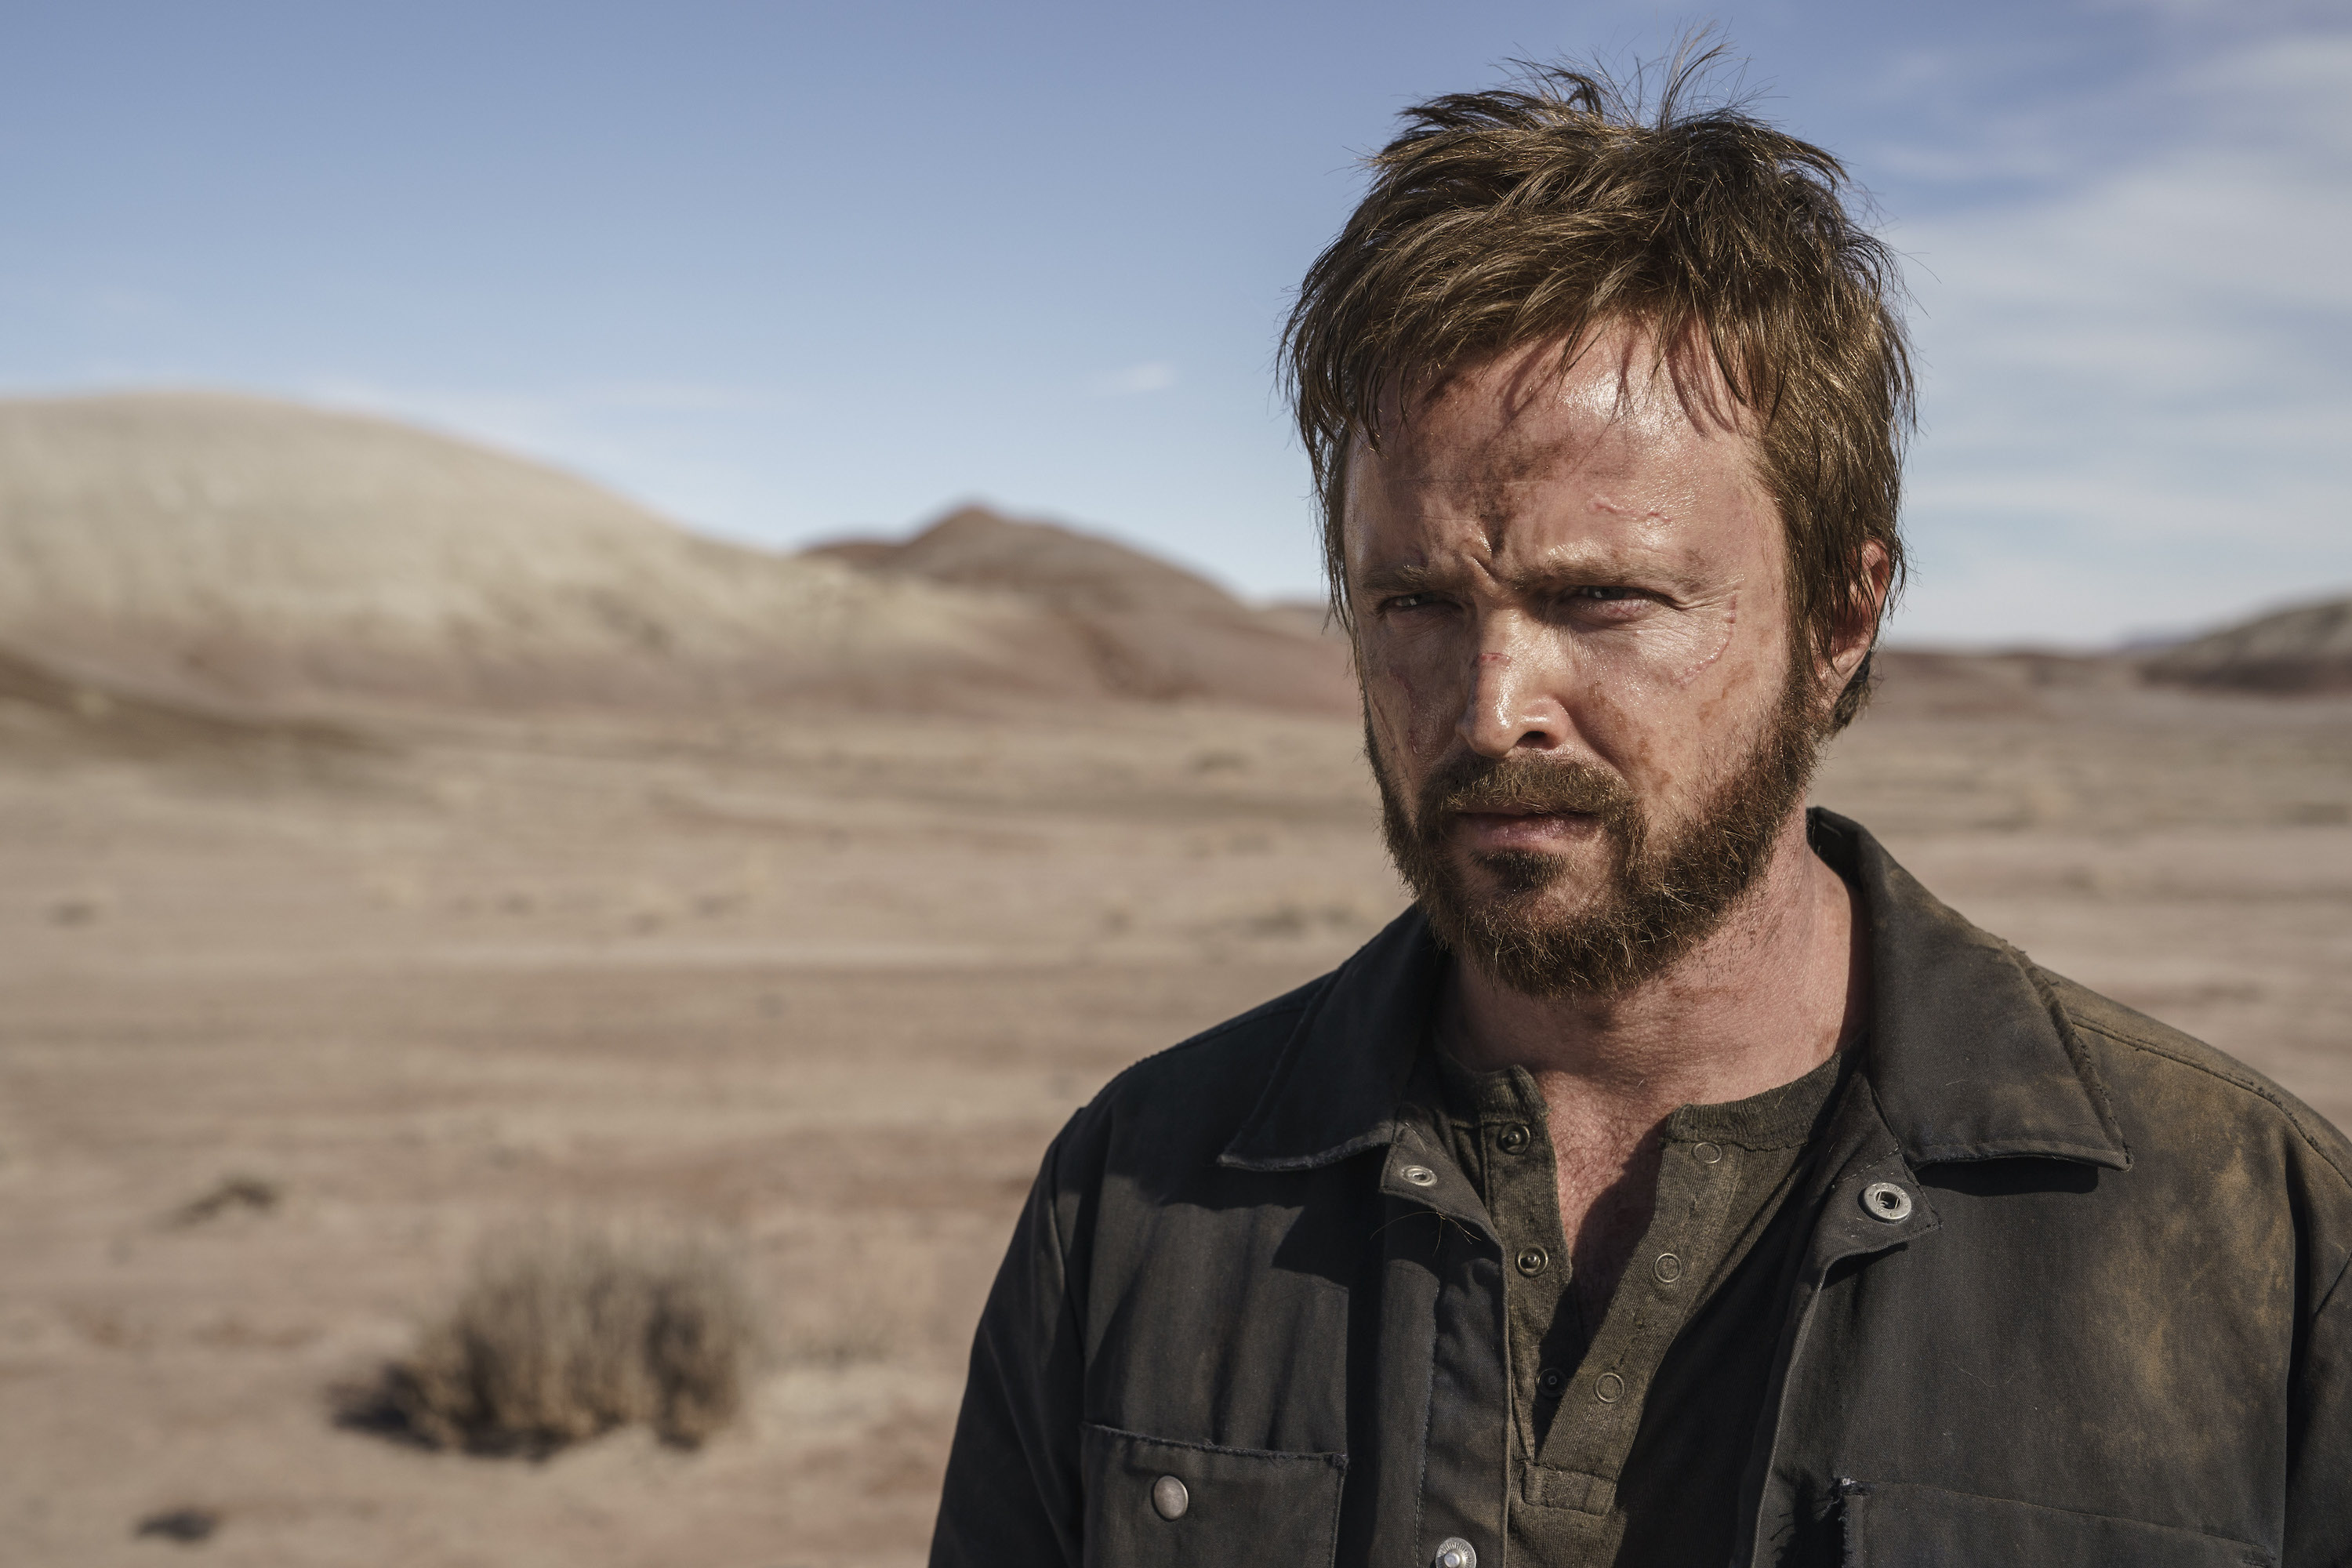 El Camino Christmas Cast.Aaron Paul On El Camino And Remaking Jesse S Last Breaking